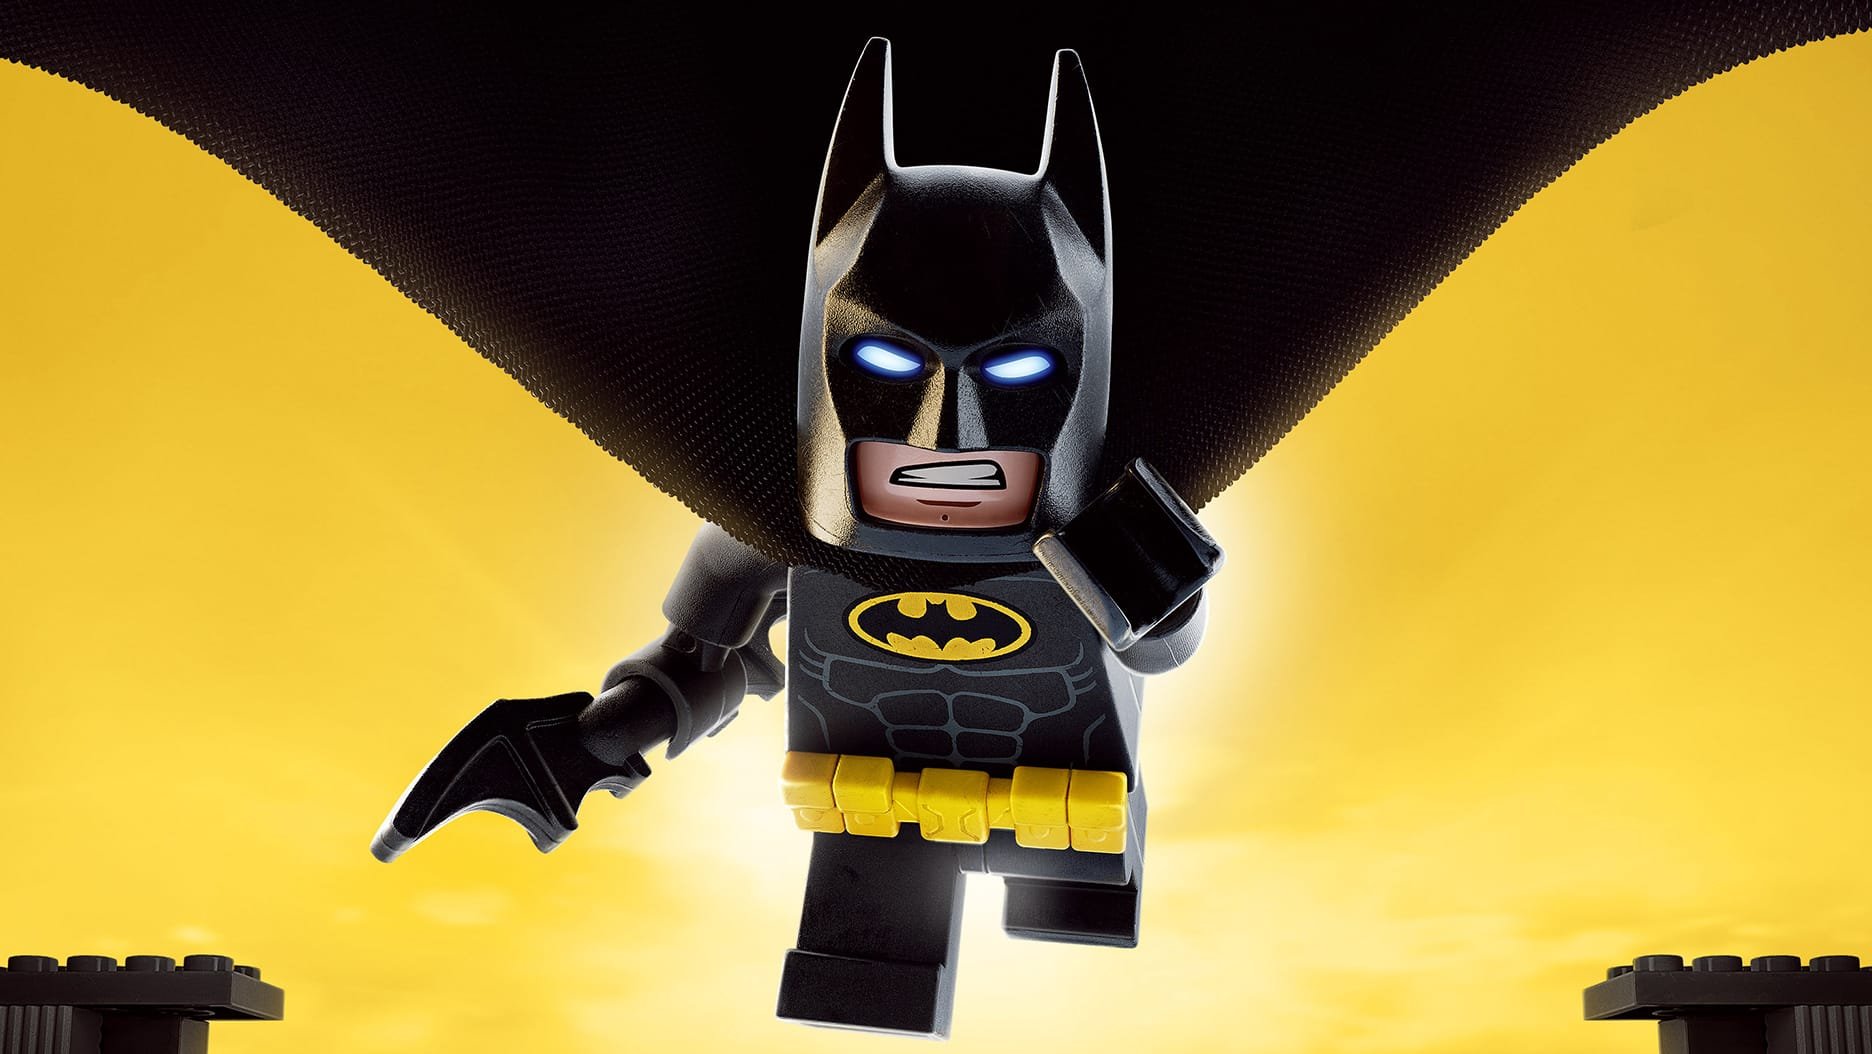 Modojo | Siri Gets An Adorable Lego Batman-Themed Surprise